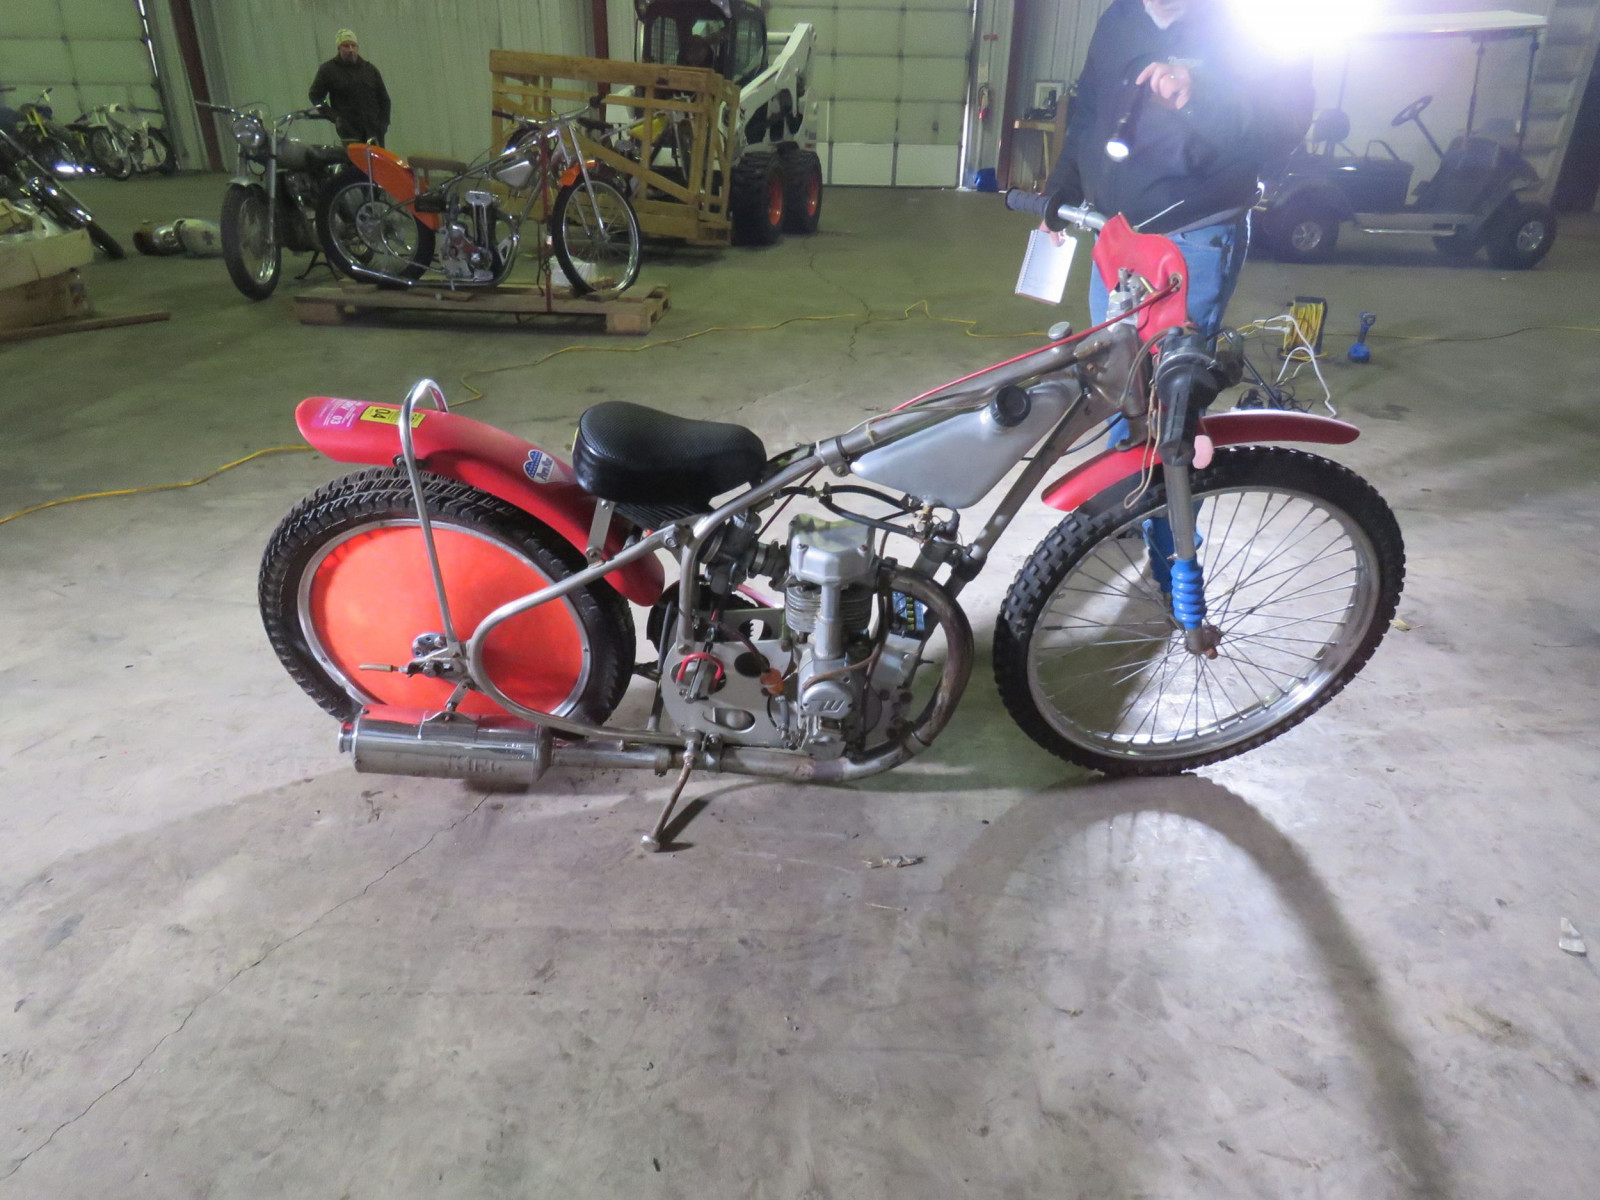 Speedway Racer Motorcycle - Image 9